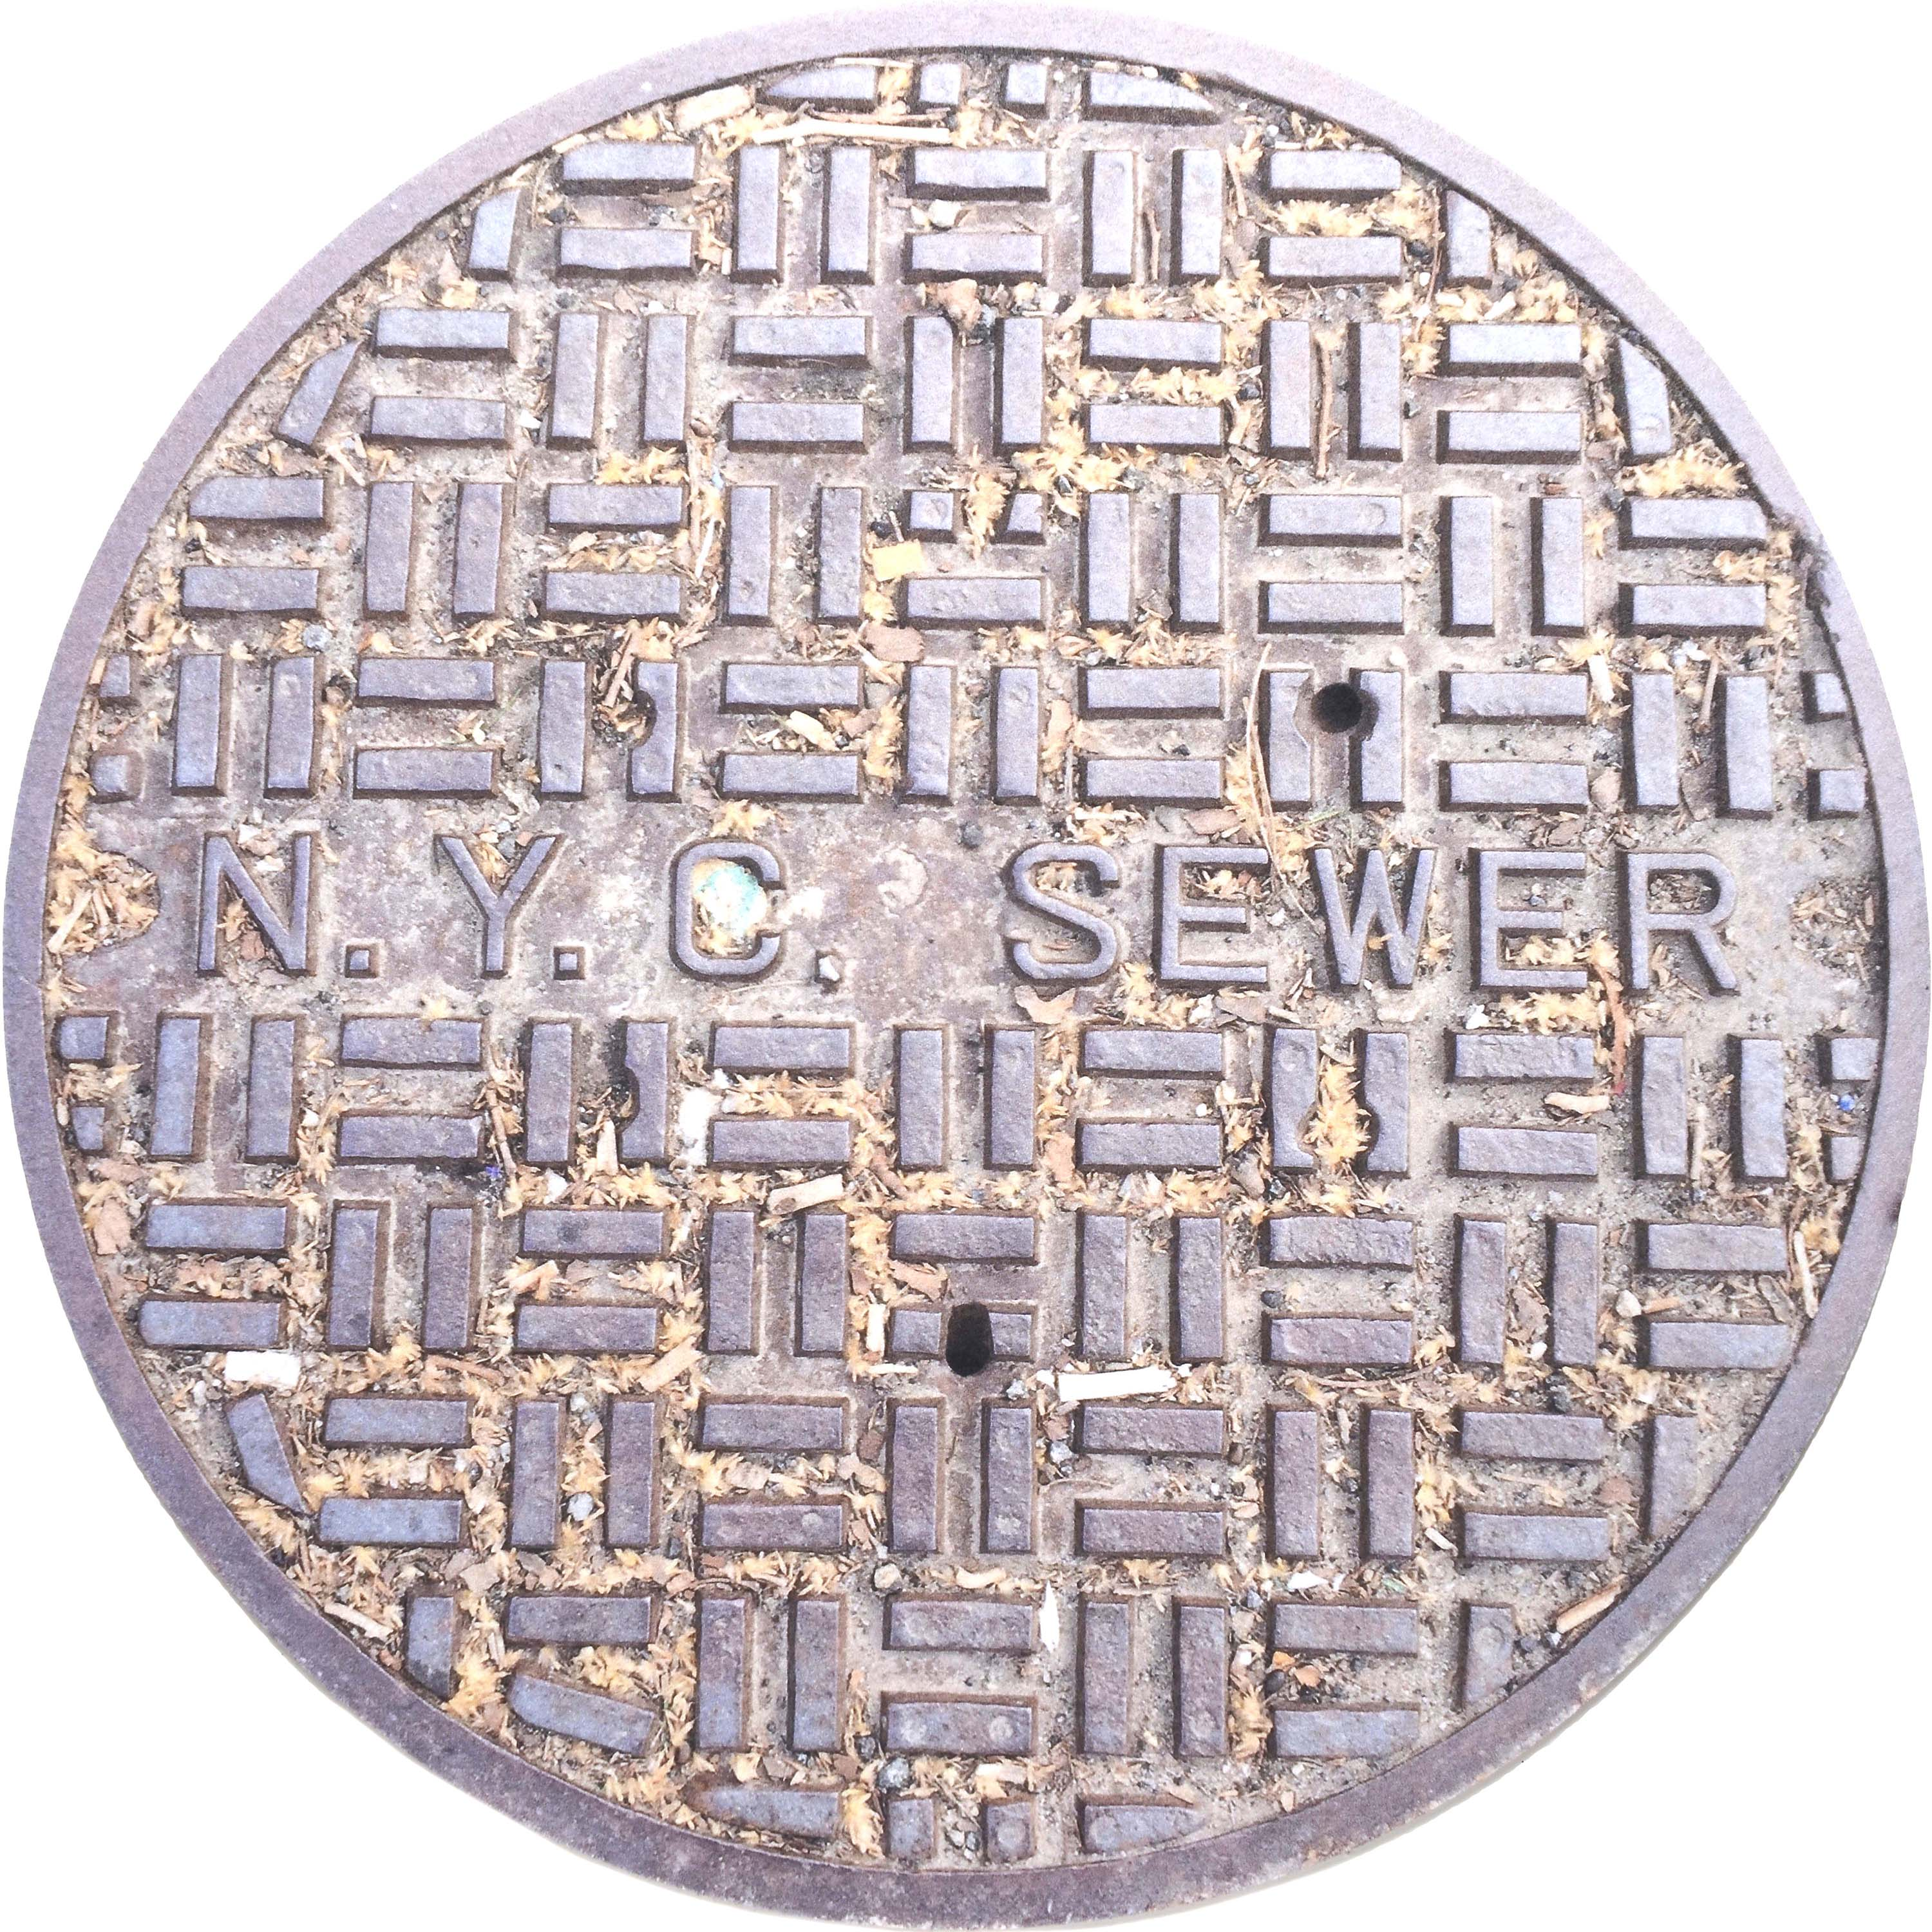 NYC SERIES - Sewer Cover Doormat, Trivet, Coaster - Sawdust - New York, NY